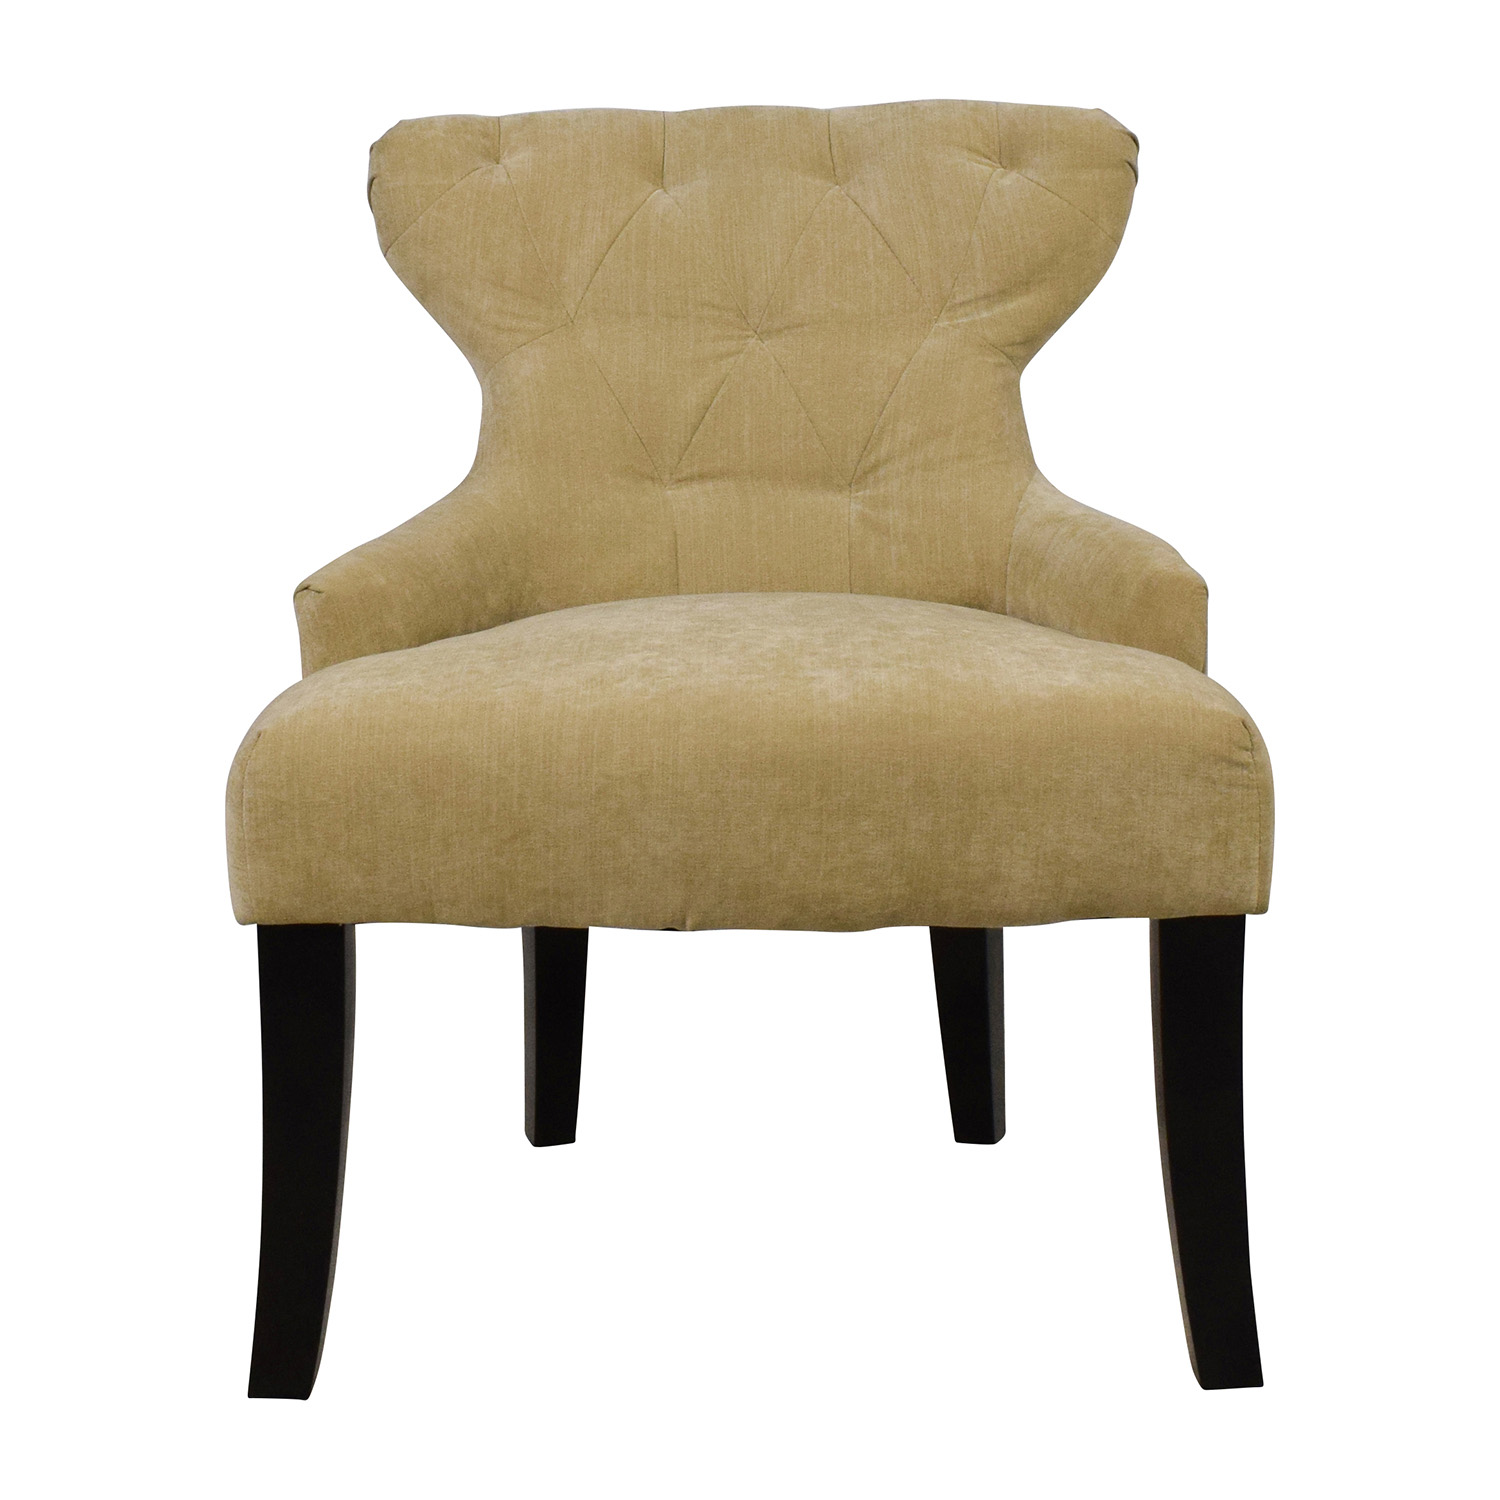 target accent chair room essentials parson slipcovers chairs home decor